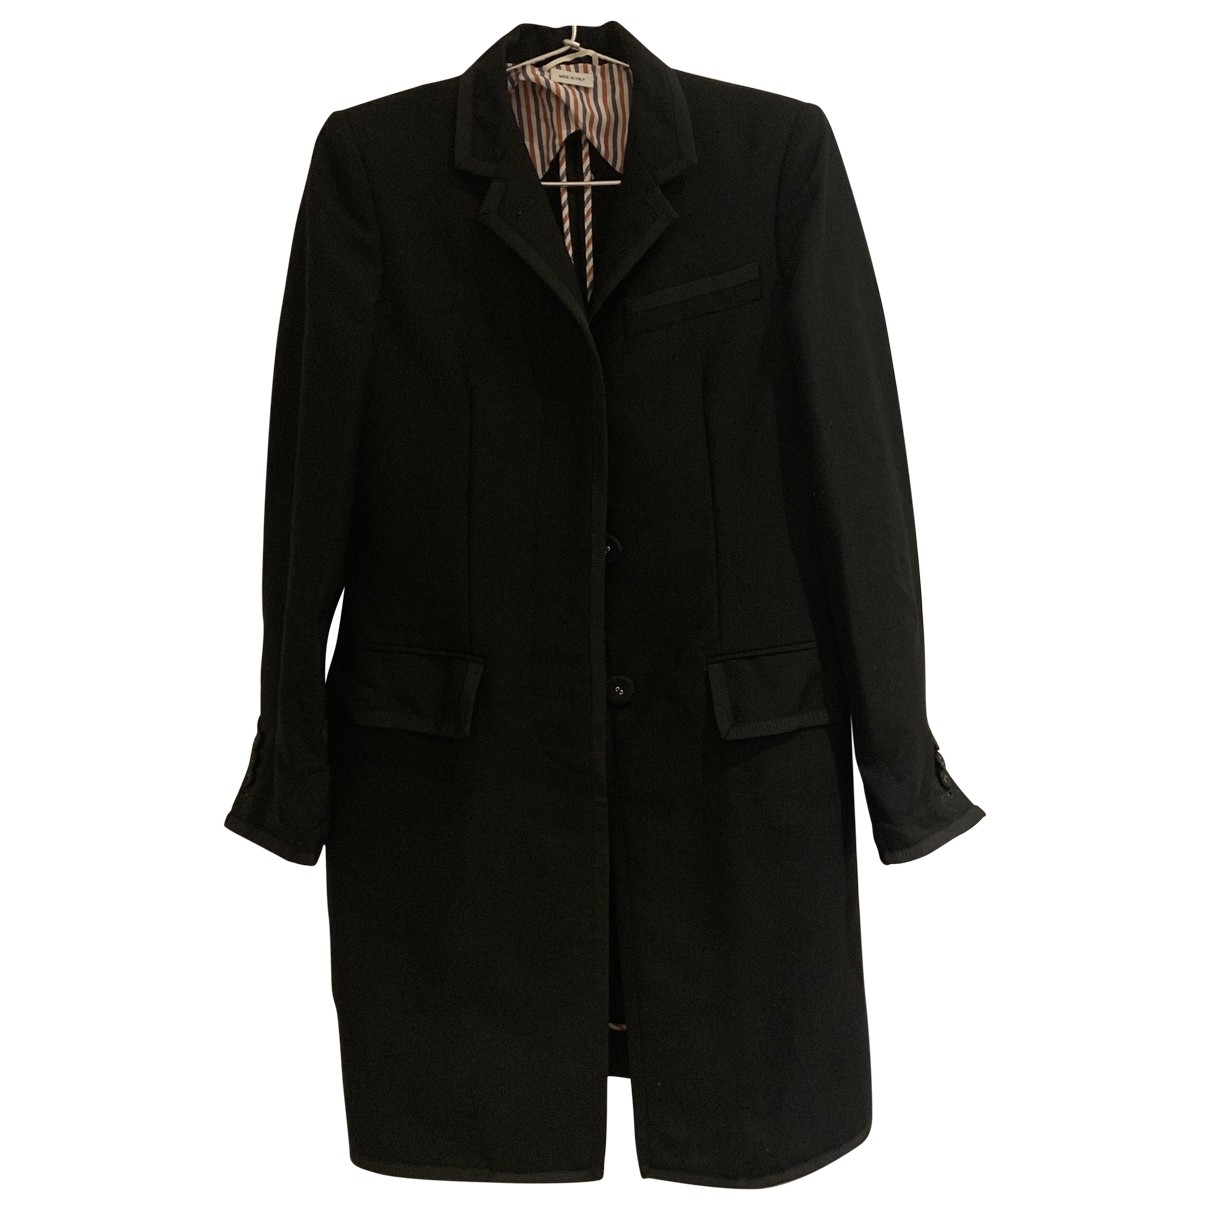 Thom Browne \N Black Wool jacket for Women 36 FR